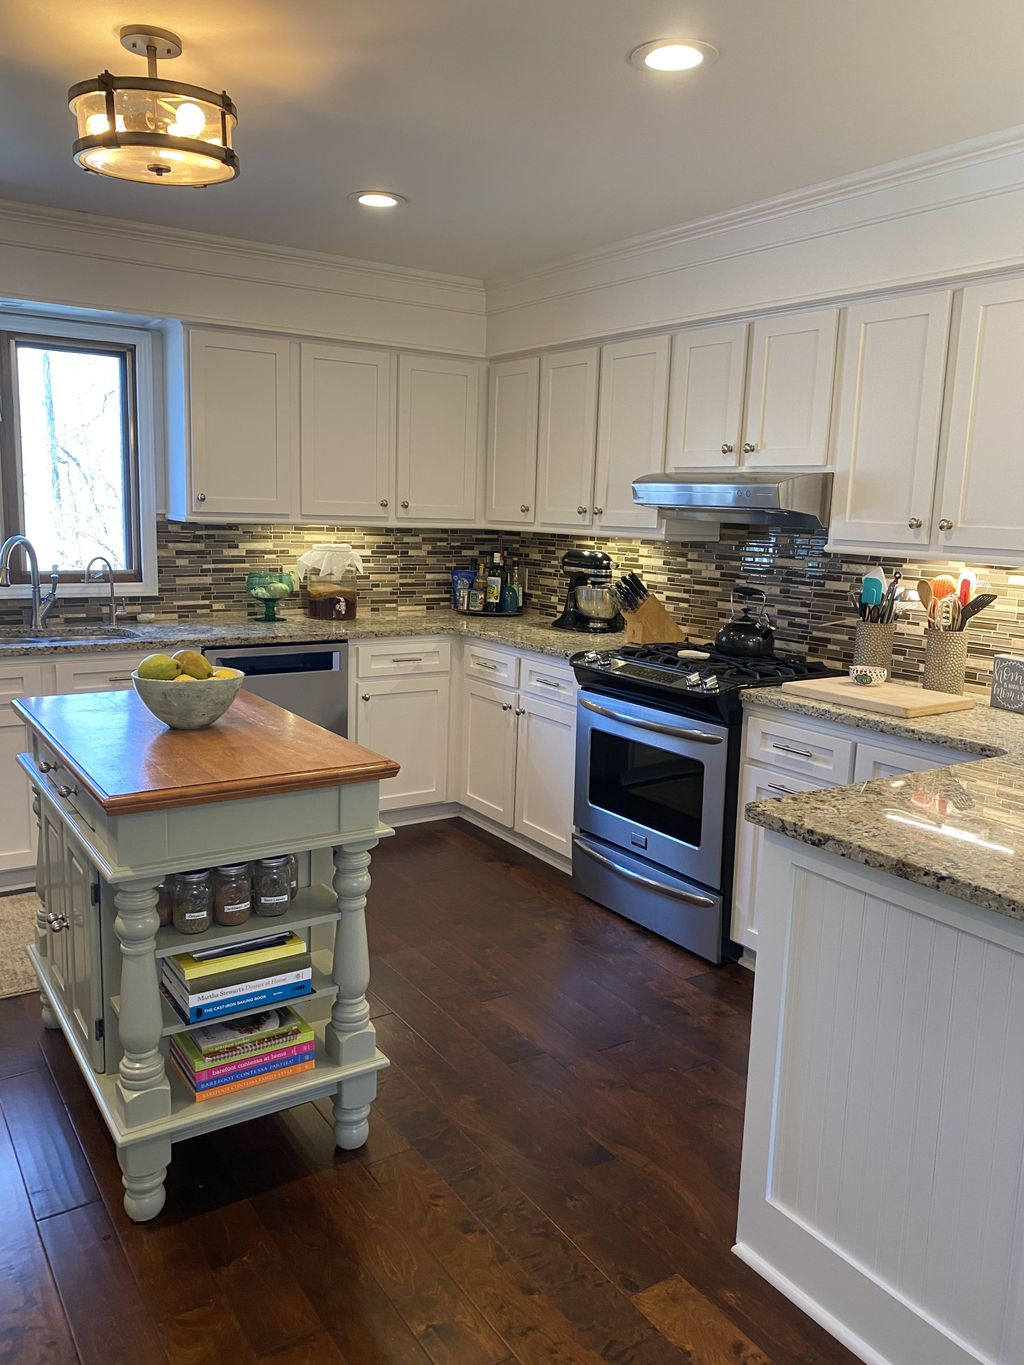 1980's Kitchen Remodel Before and After